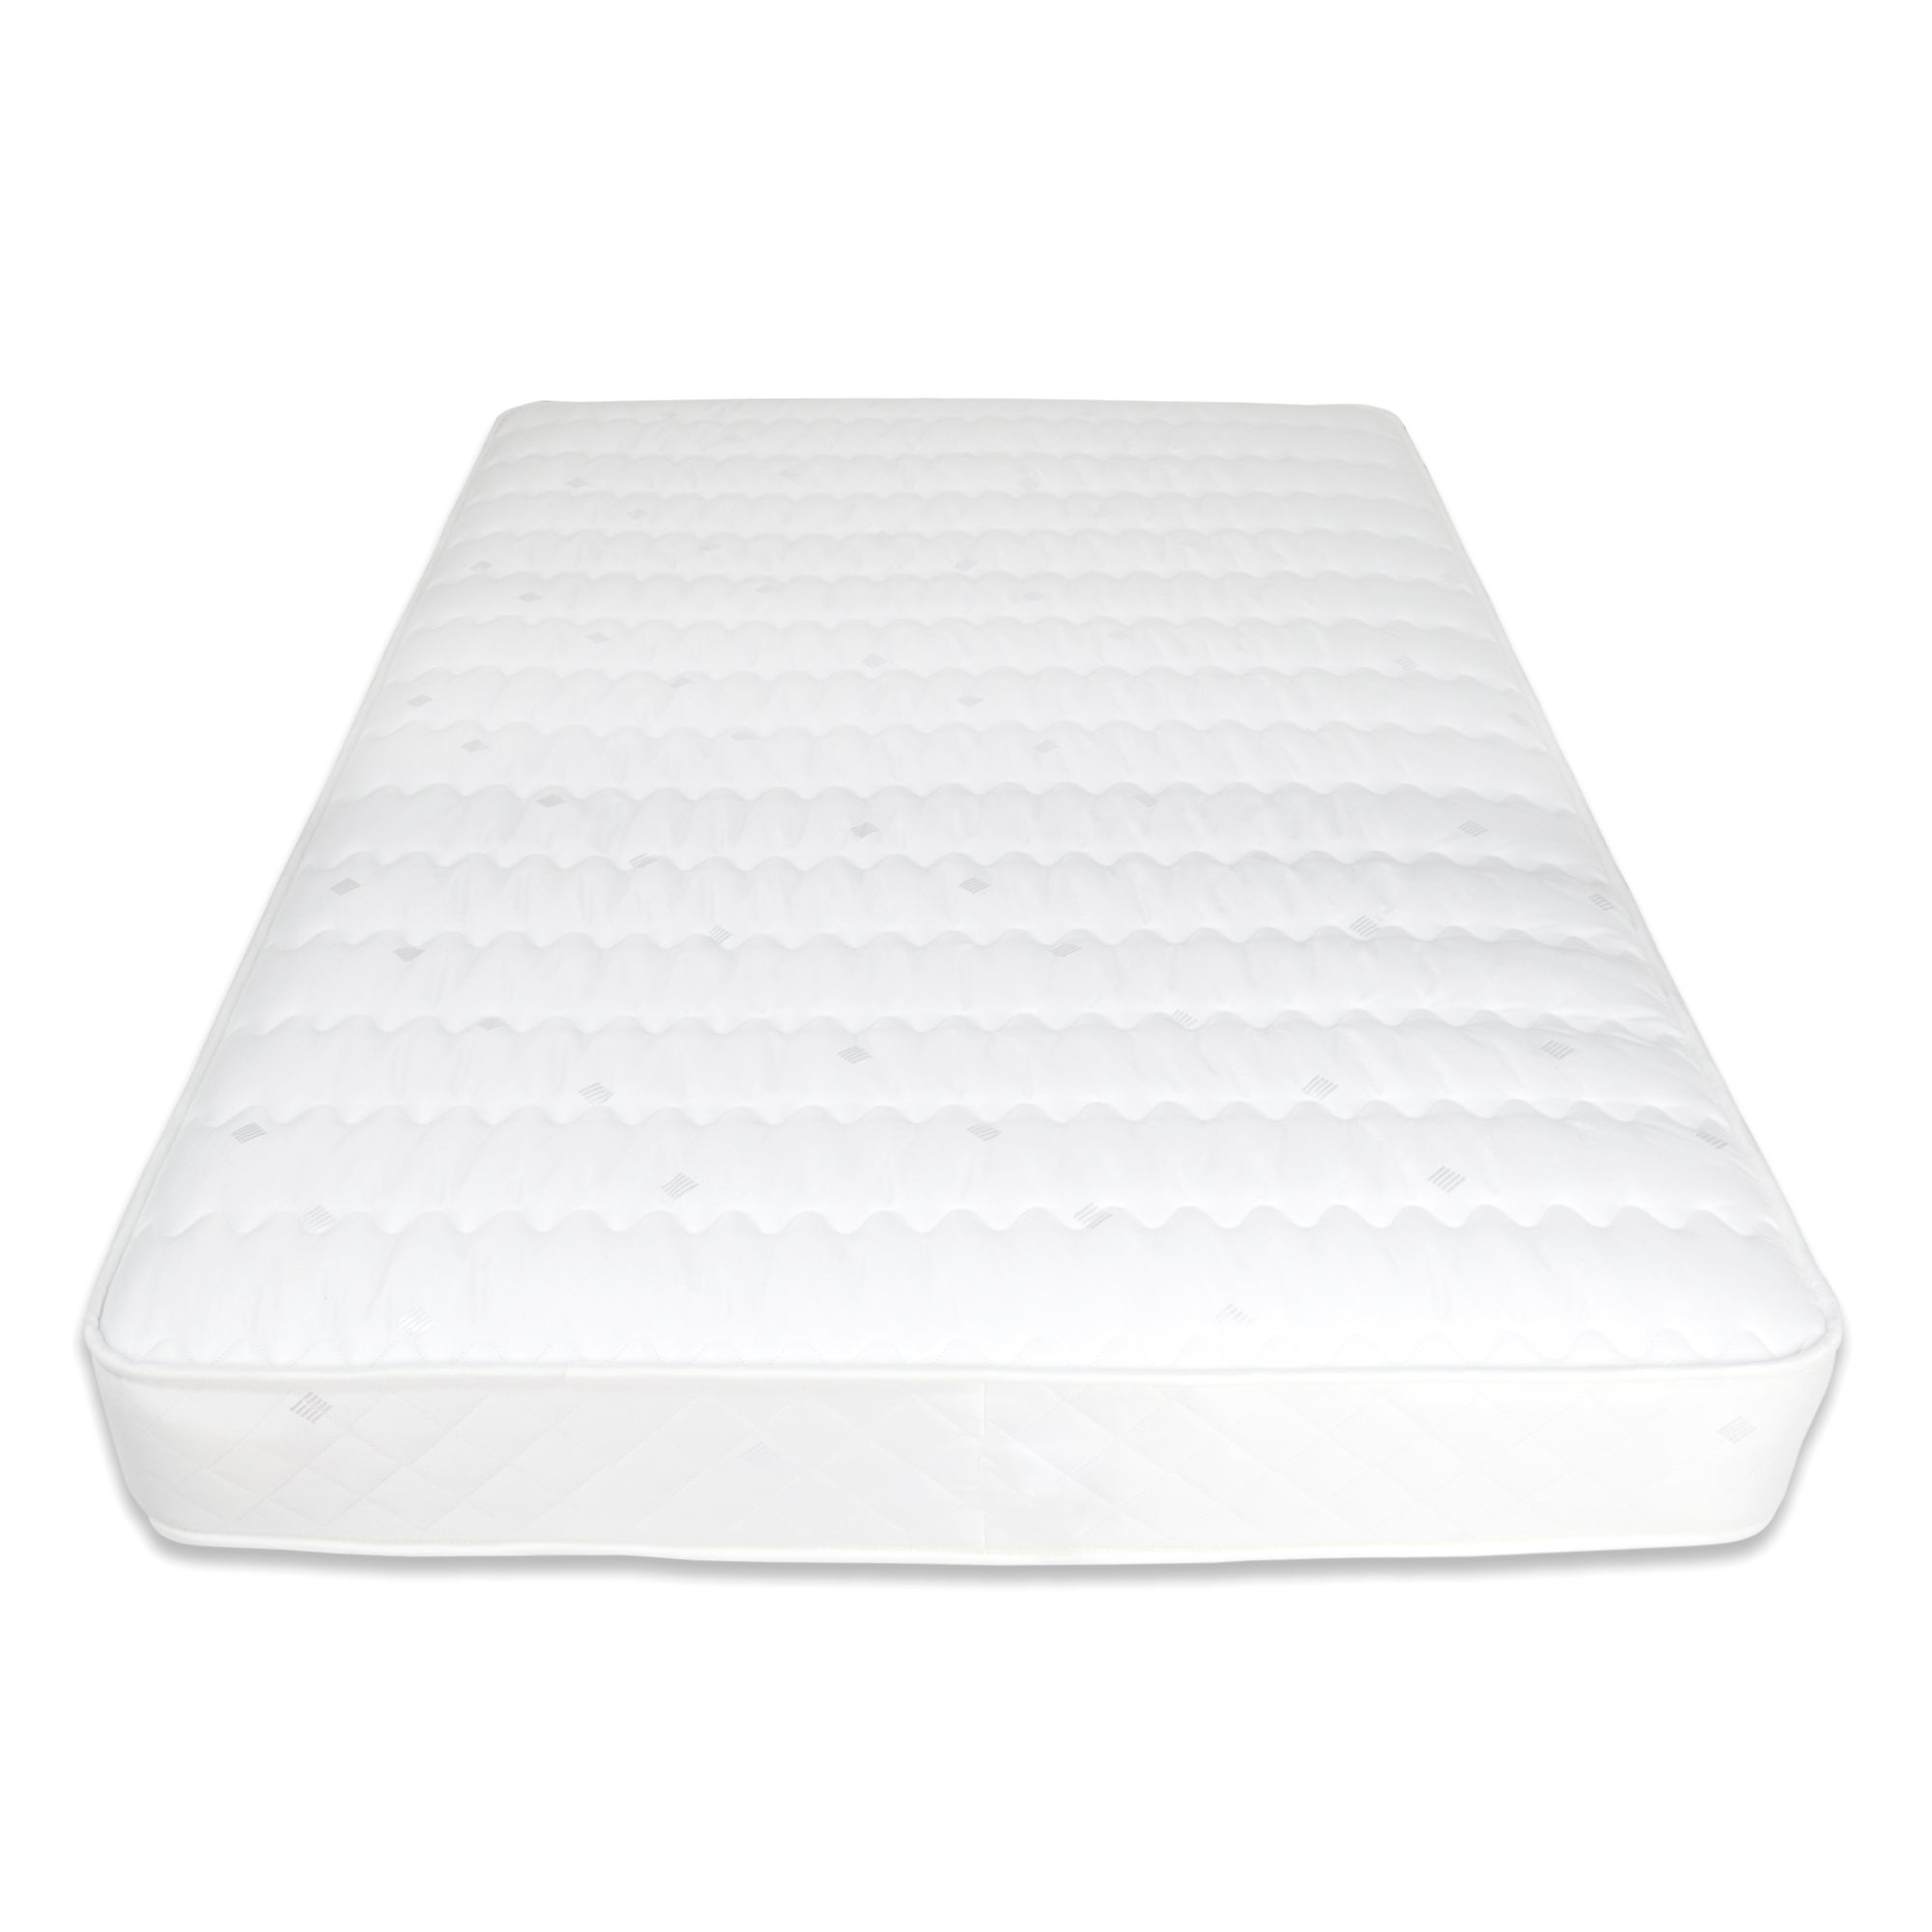 Canterbury Orthopaedic Mattress